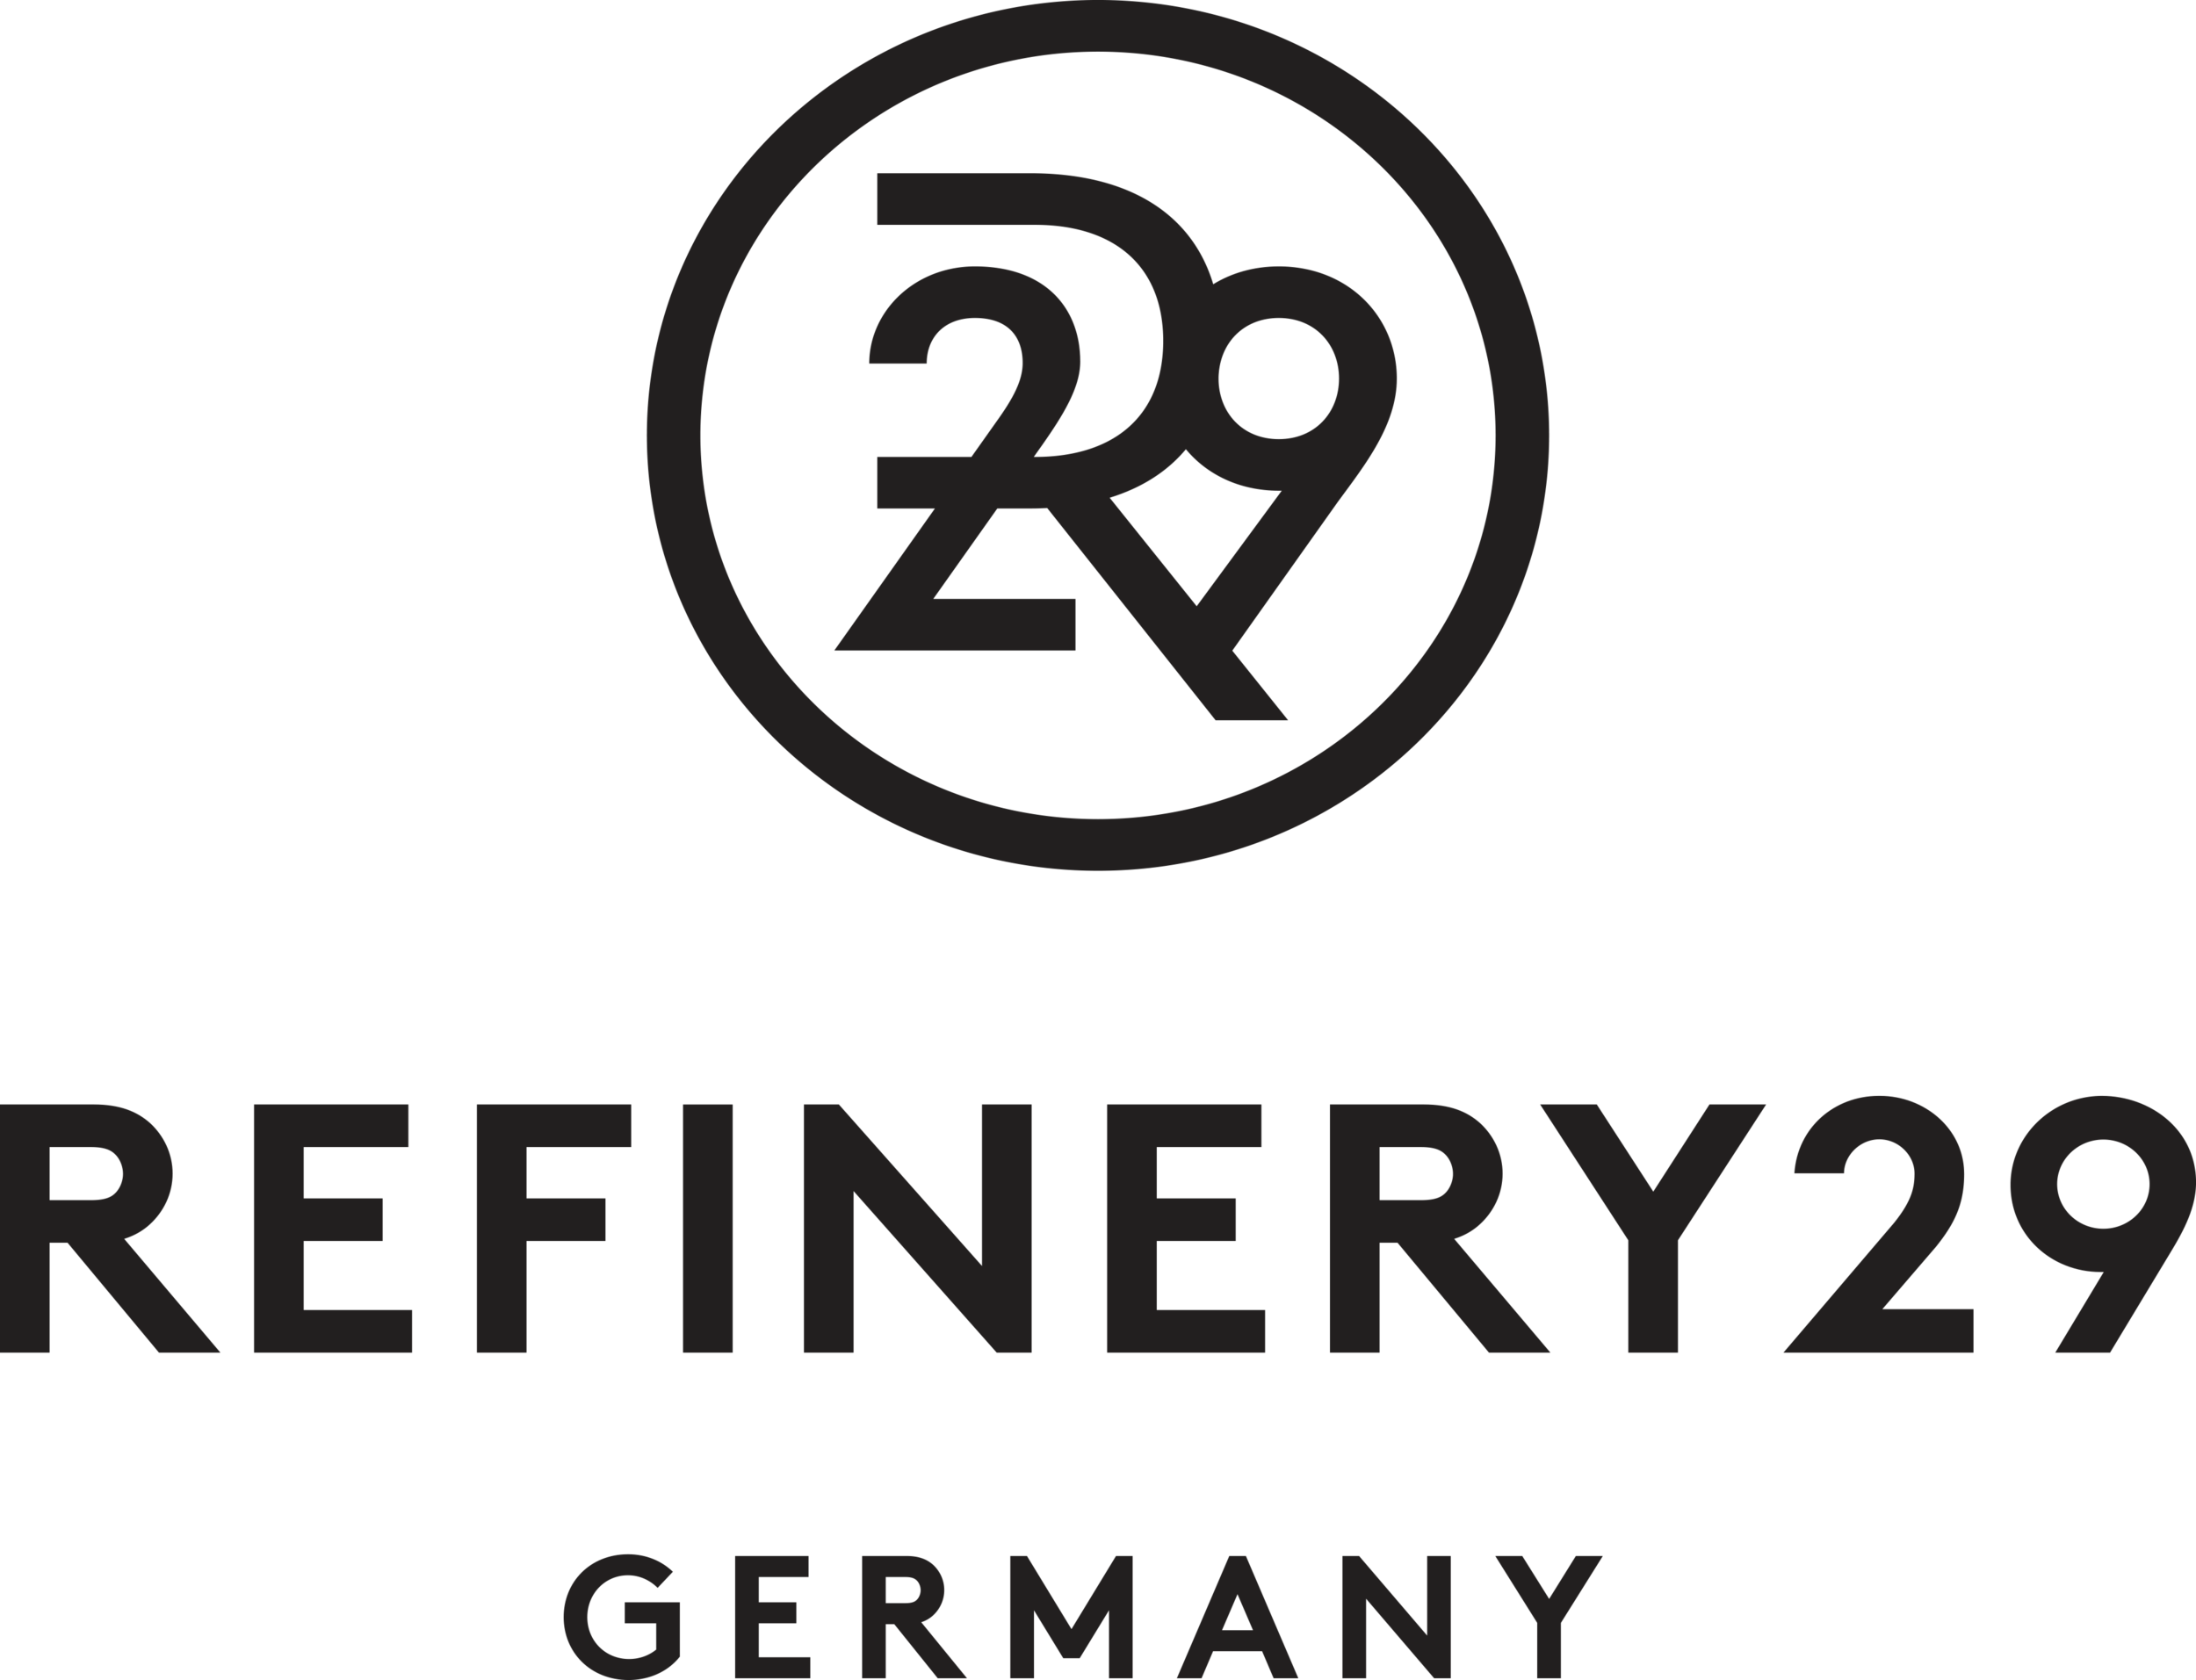 R29_Germany_Corporate Logo.png